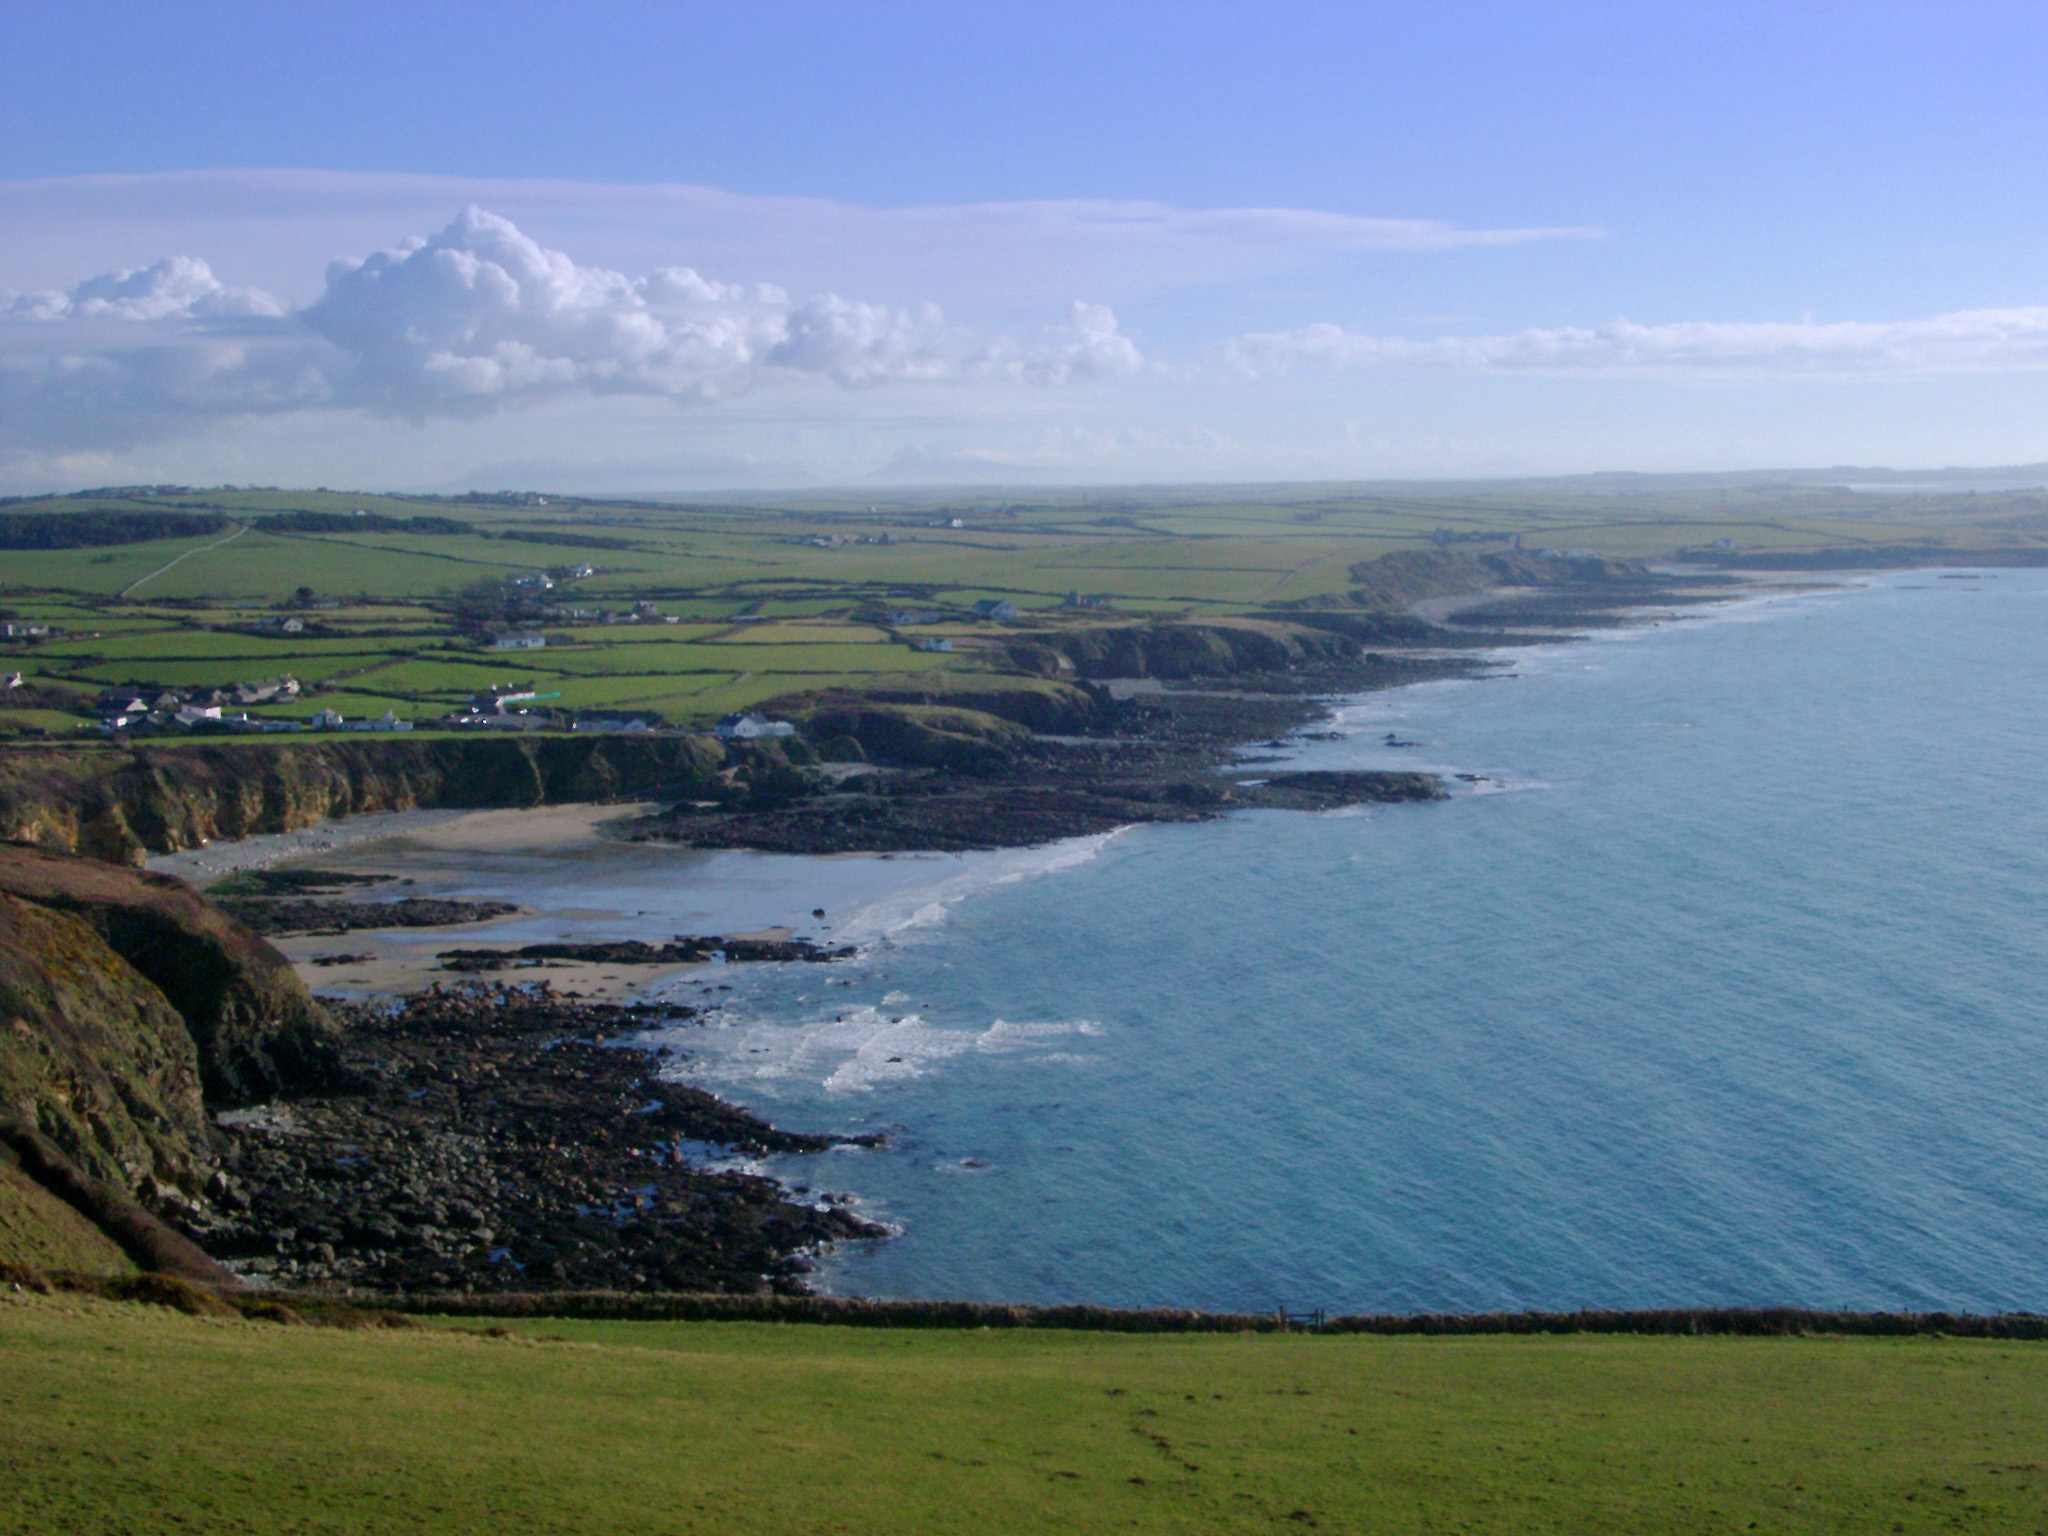 Extensive view of the Anglesey coastline and bay with a calm blue ocean, rocky cliffs and green plateau, Wales, UK